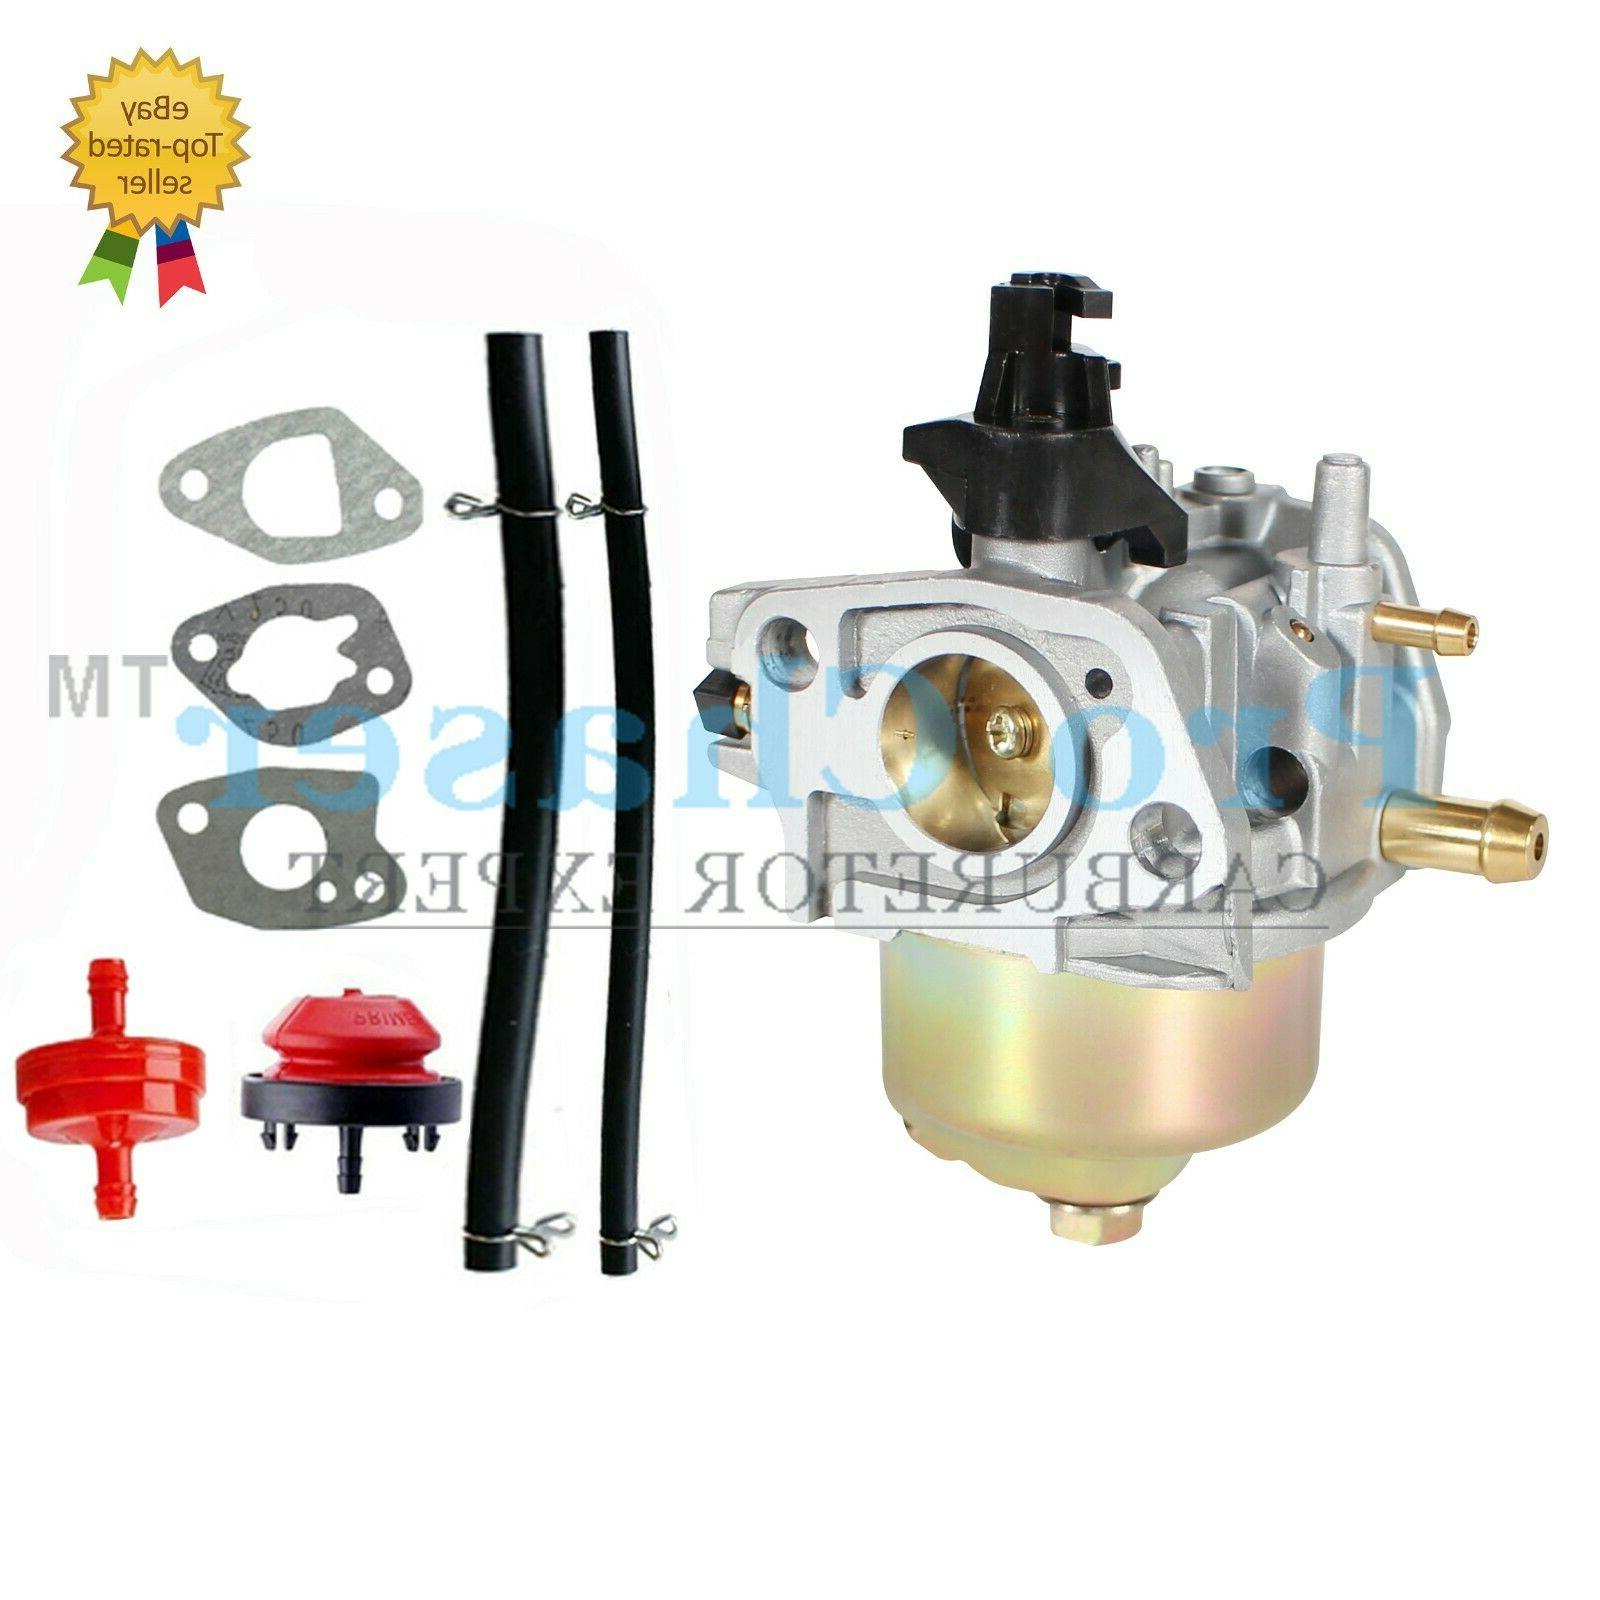 carburetor carb for mtd yard man self